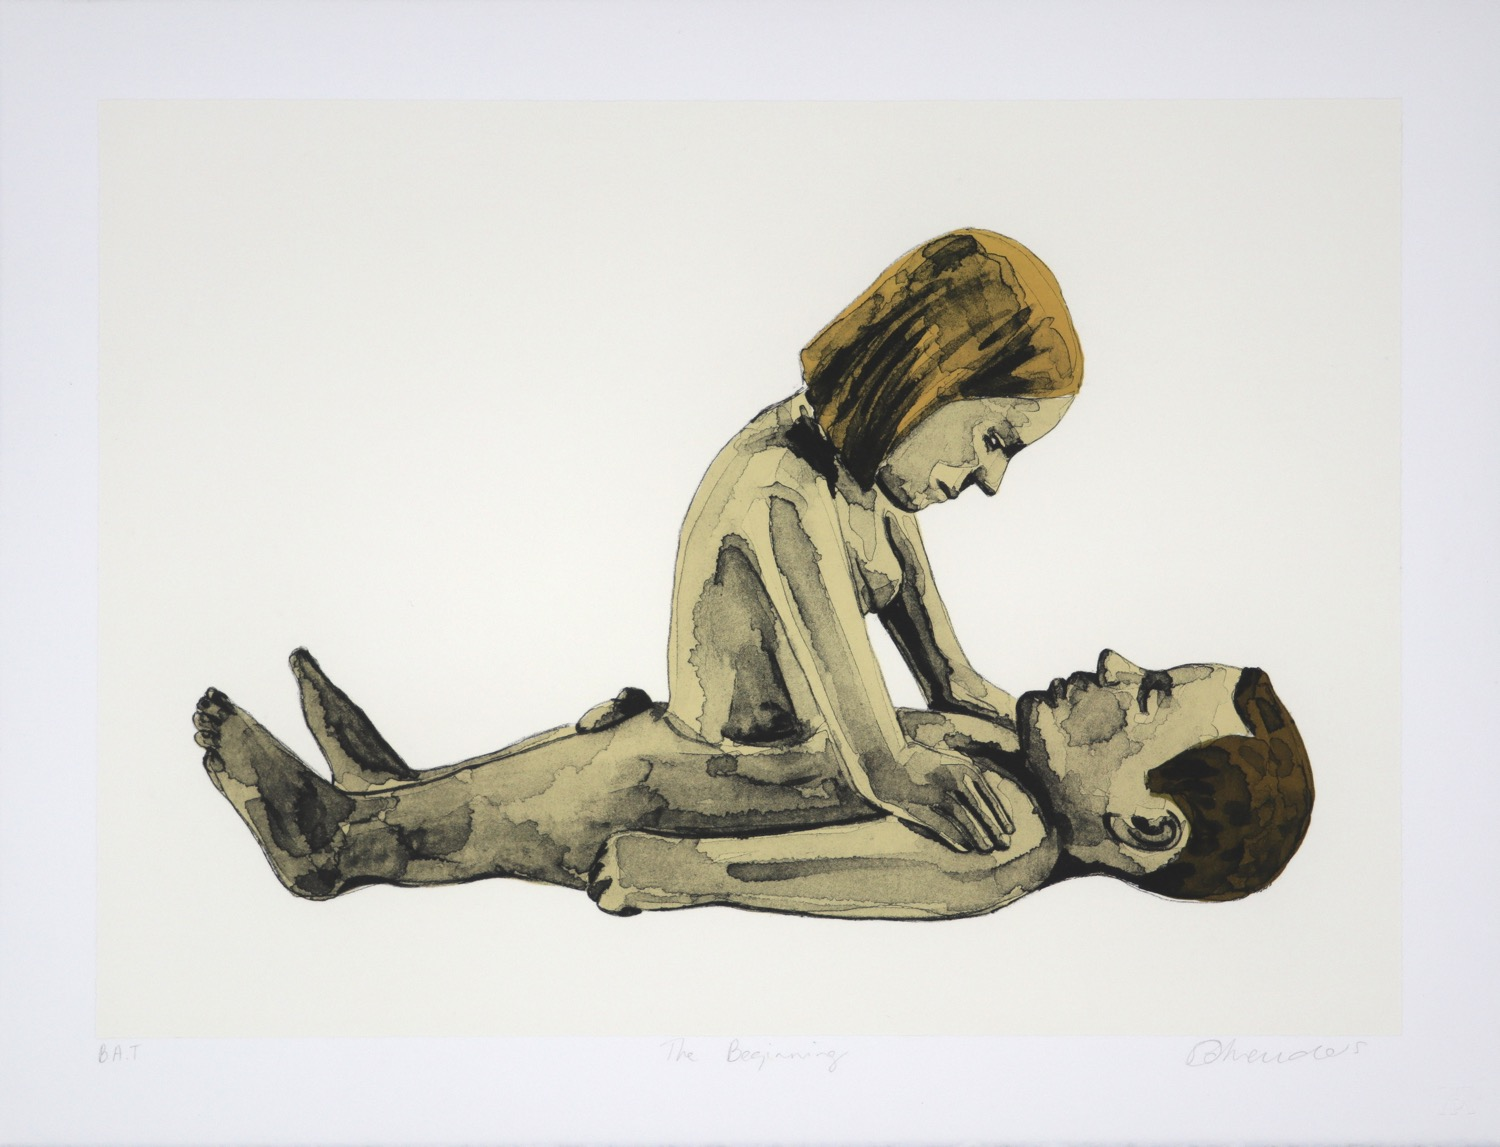 A naked male figure lying prone with a naked female figure's torso emerging from his stomach